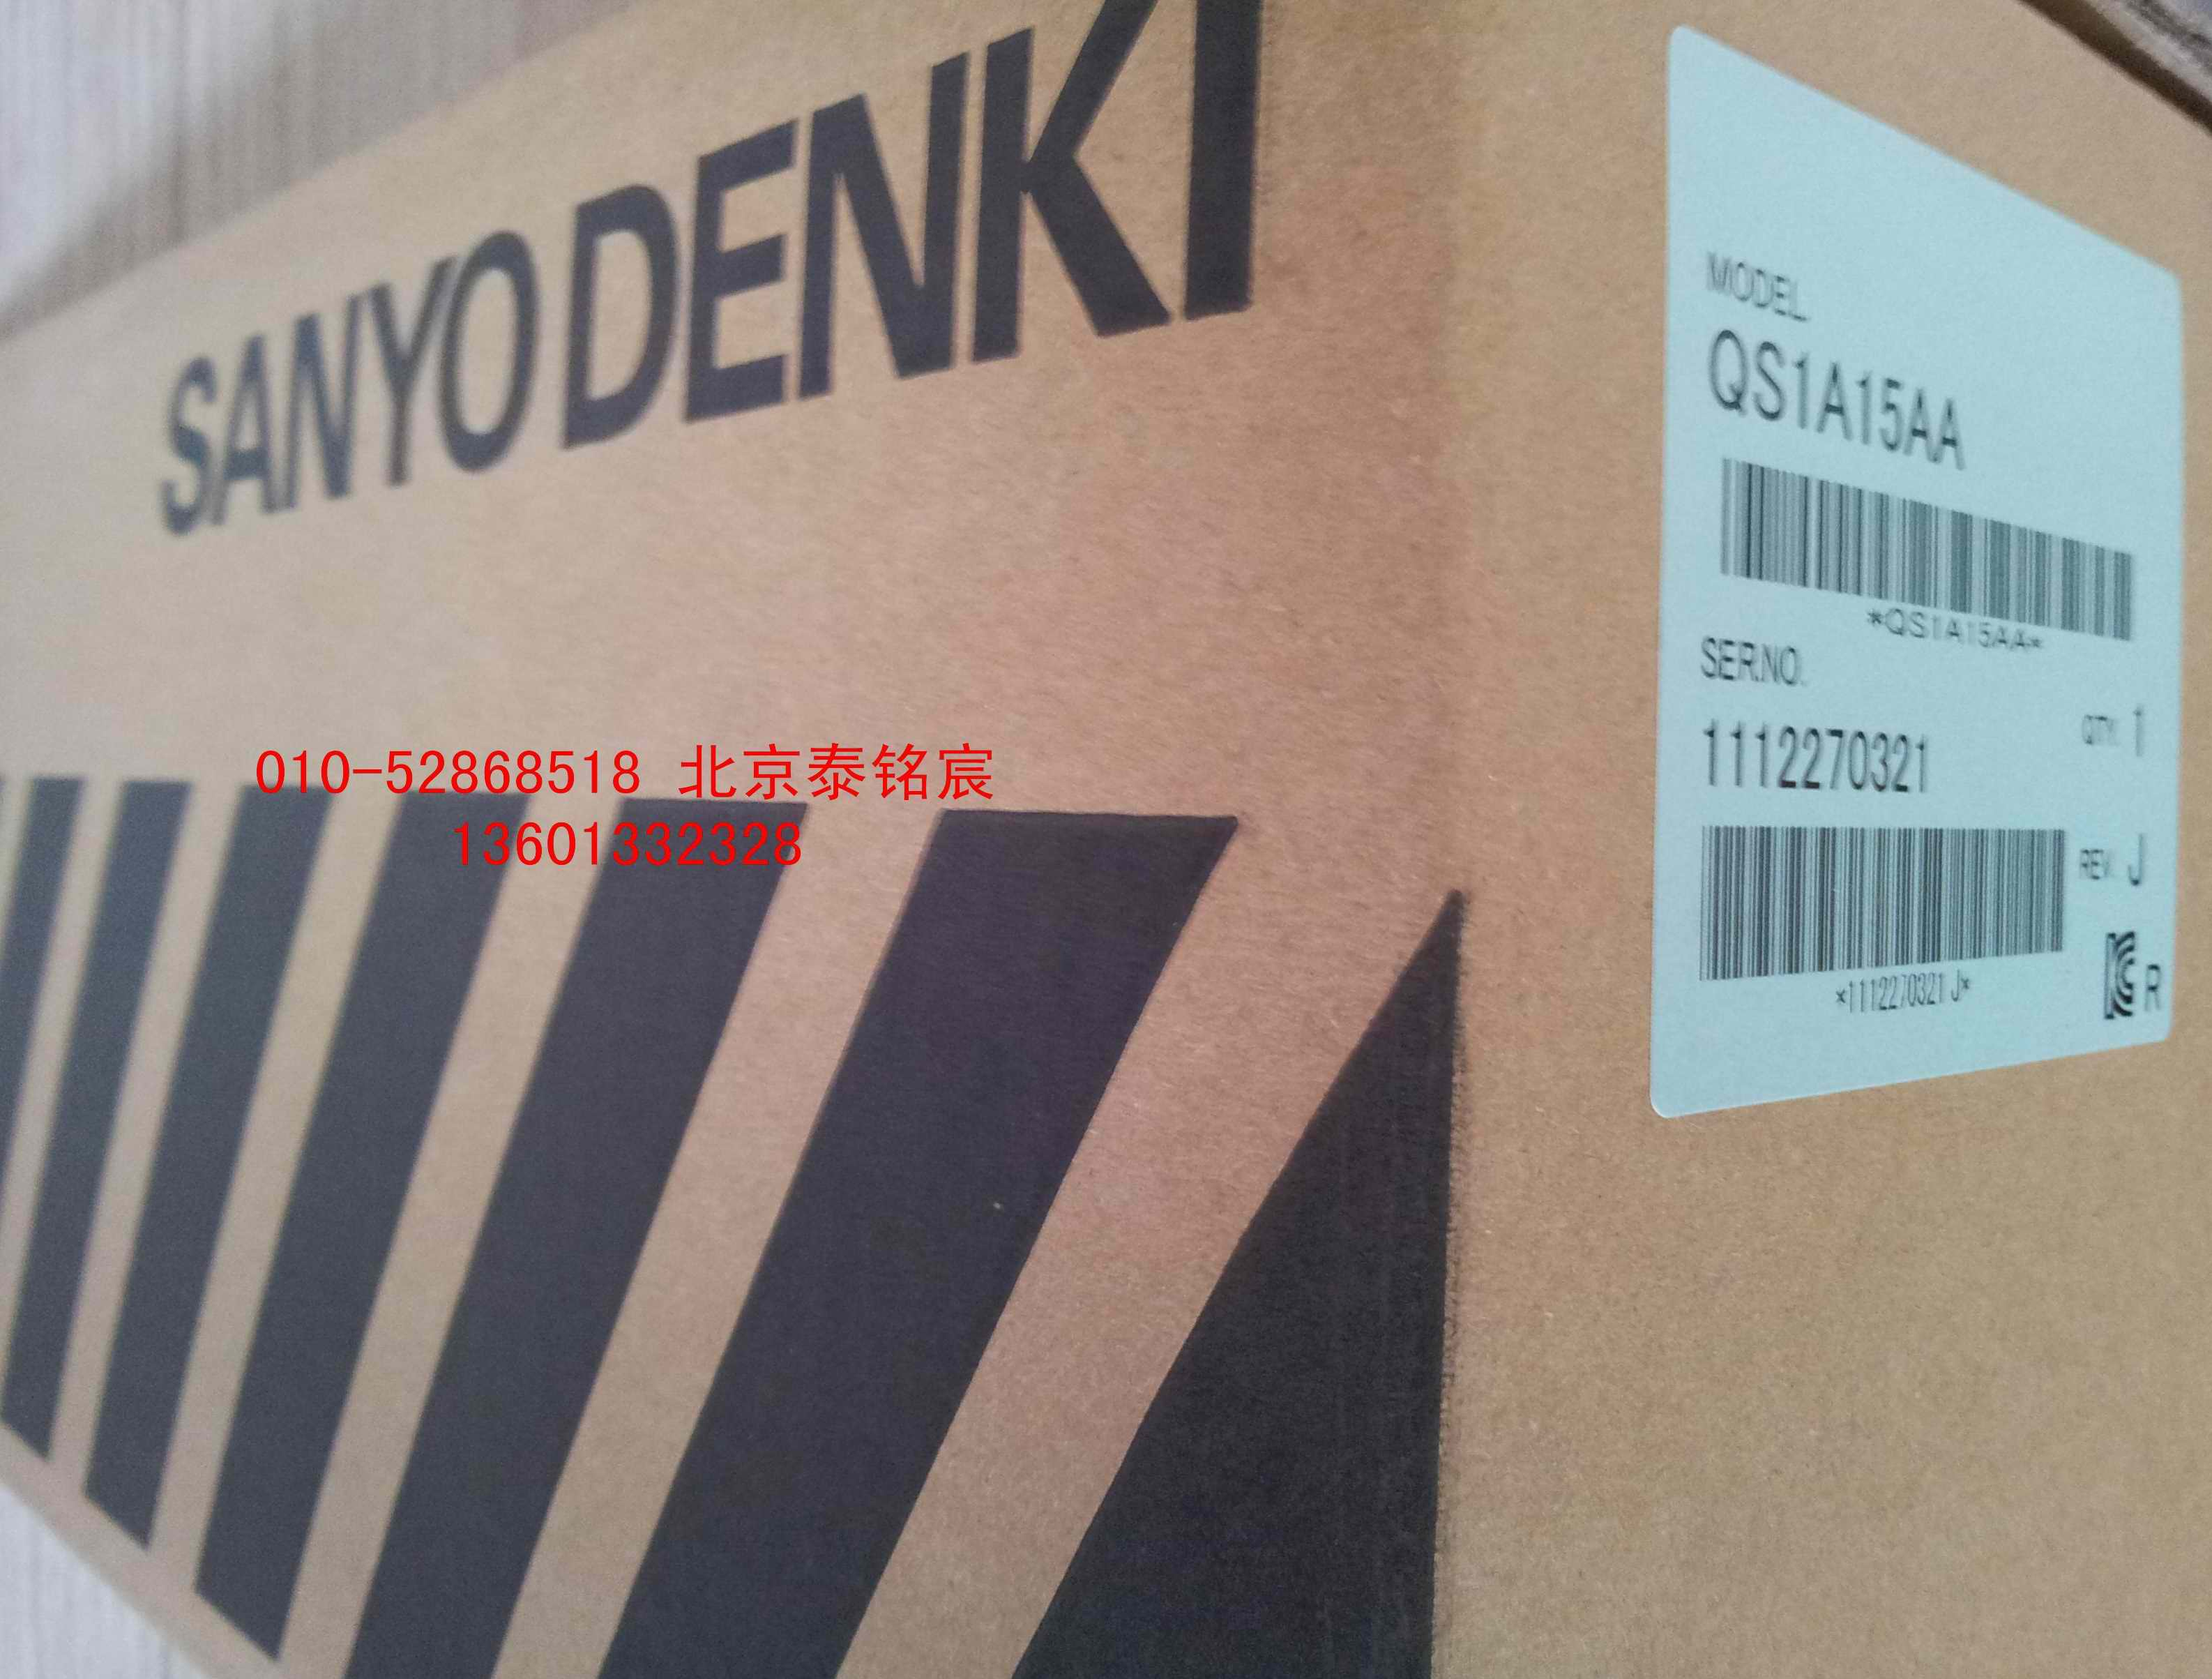 Negotiable QS1A15AA Sanyo servo drive sanyo denki New spot Same day delivery